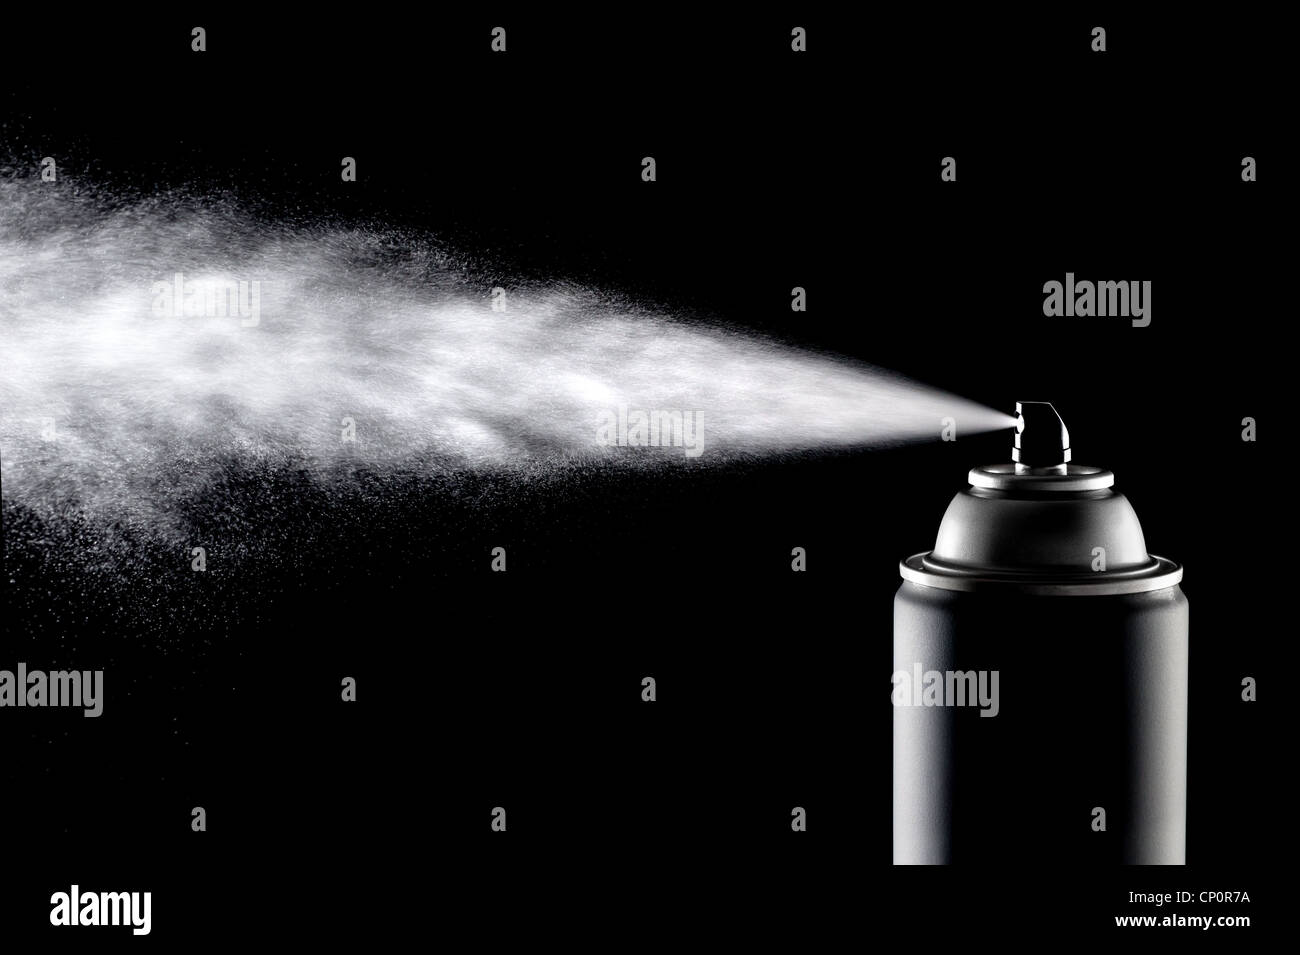 An aerosol can of spray dispensing its content against a backlit black background. - Stock Image